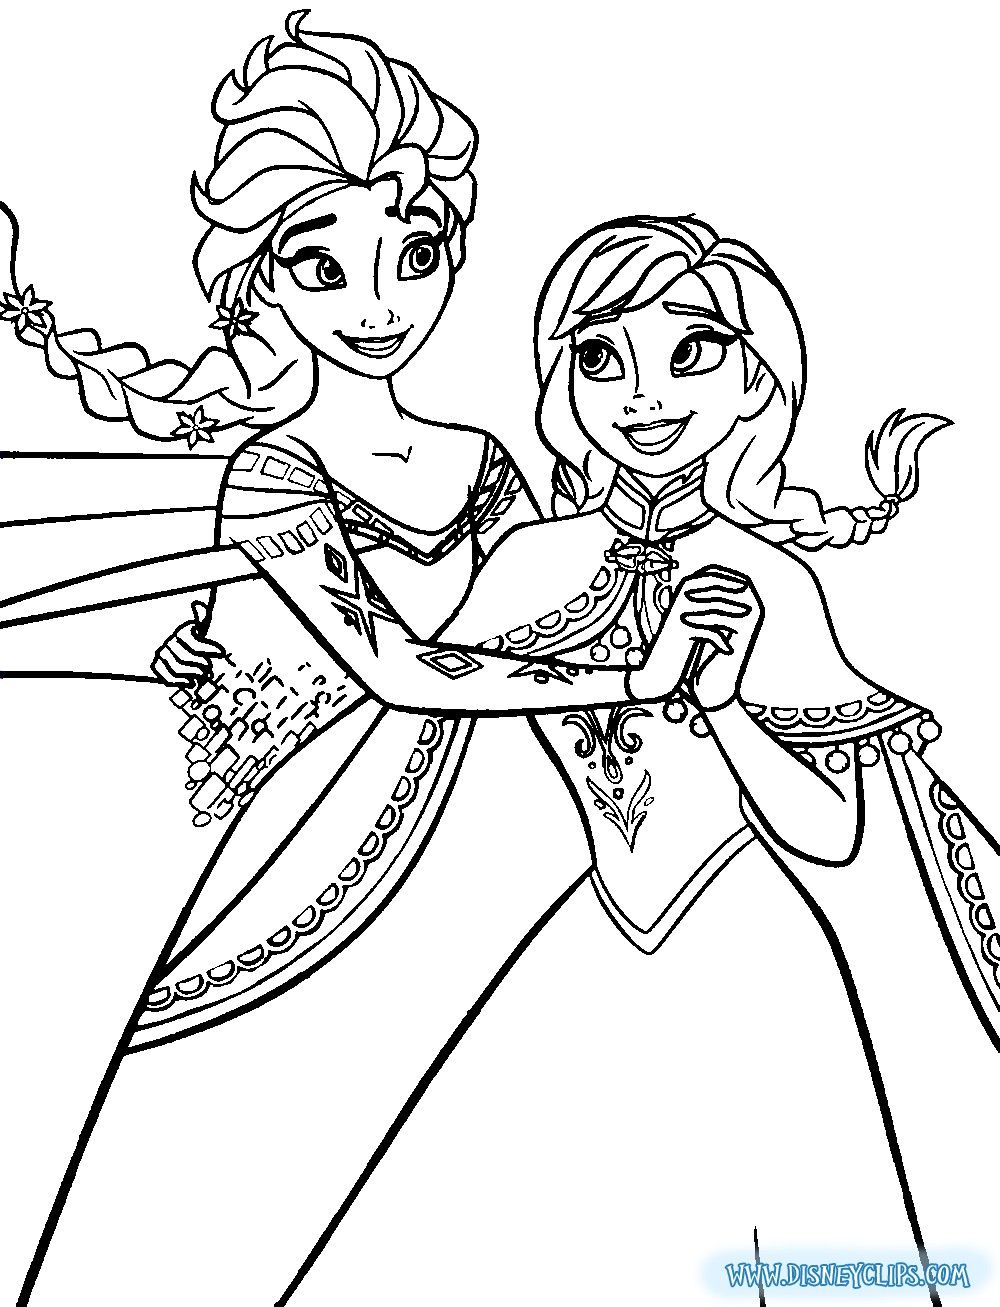 Disney Princess Coloring Pages Frozen Elsa And Anna Through The Thousands Of Photog Elsa Coloring Pages Disney Princess Coloring Pages Cartoon Coloring Pages